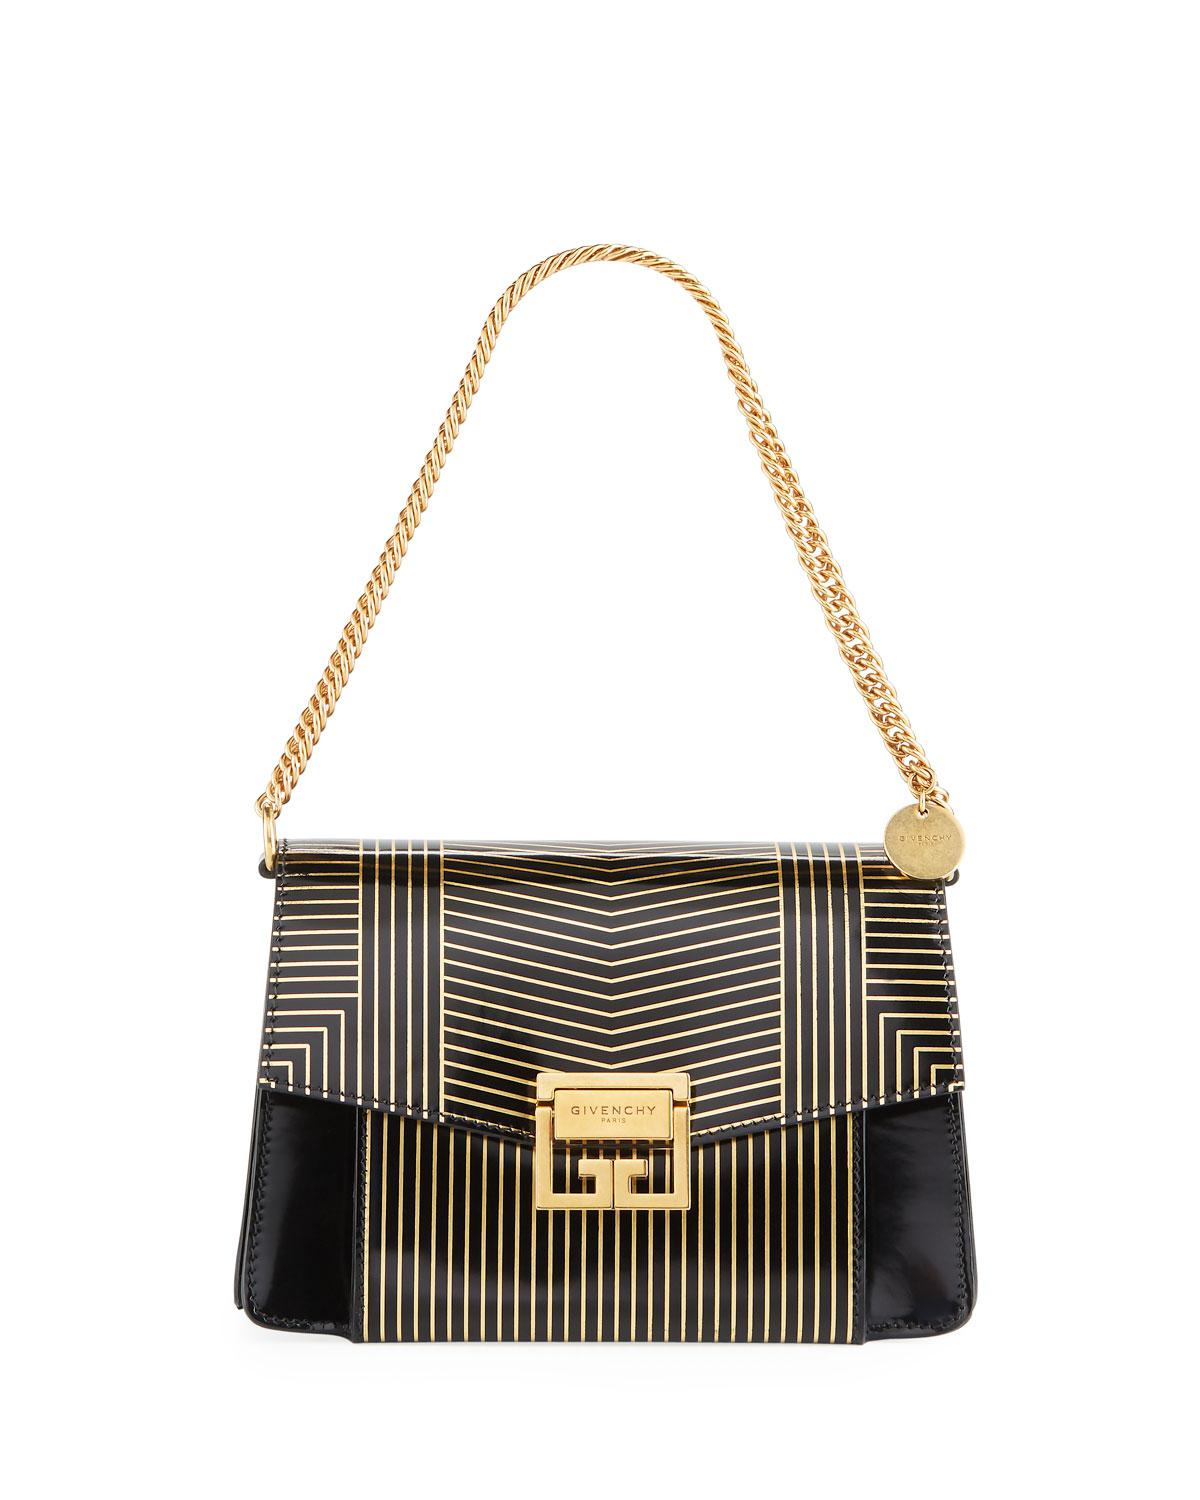 547deb3c2d Lyst - Givenchy Gv3 Small Striped Leather Satchel Bag in Black ...